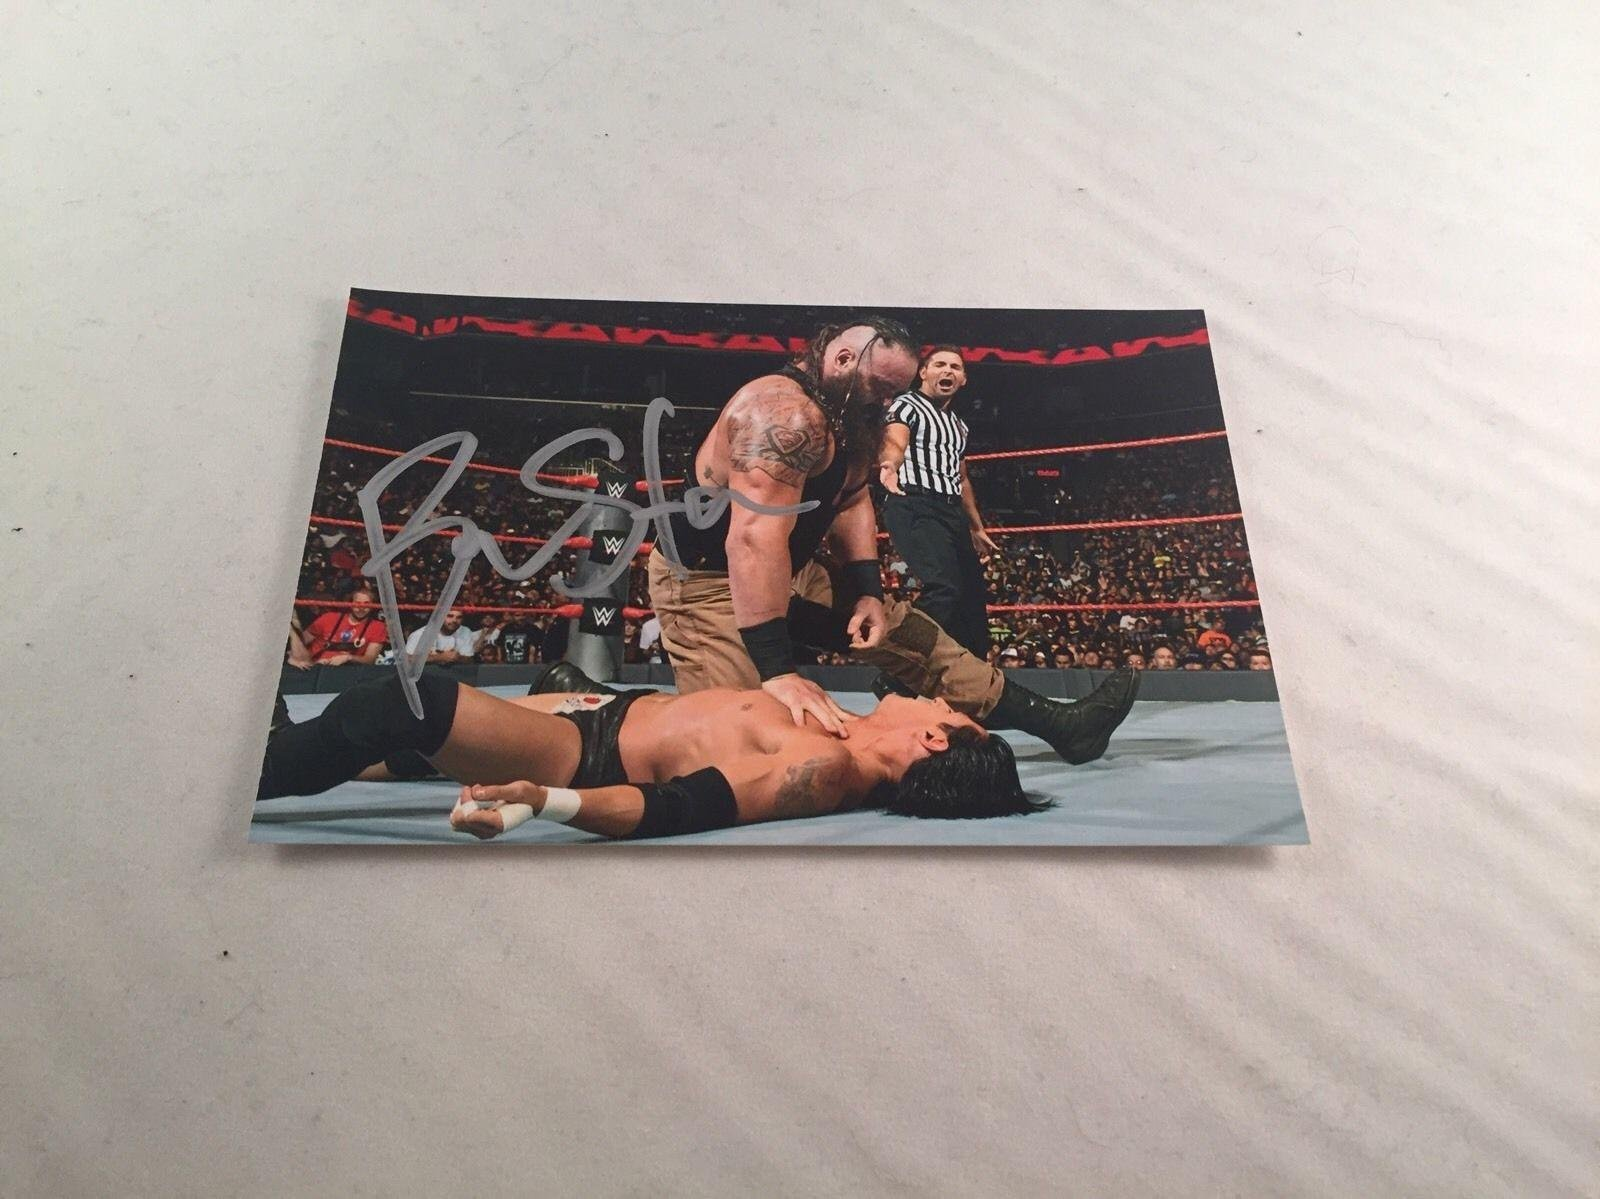 BRAUN STROWMAN SIGNED 4x6 PHOTO WWE MONSTER AMONG MEN Autographed Wrestling Photos